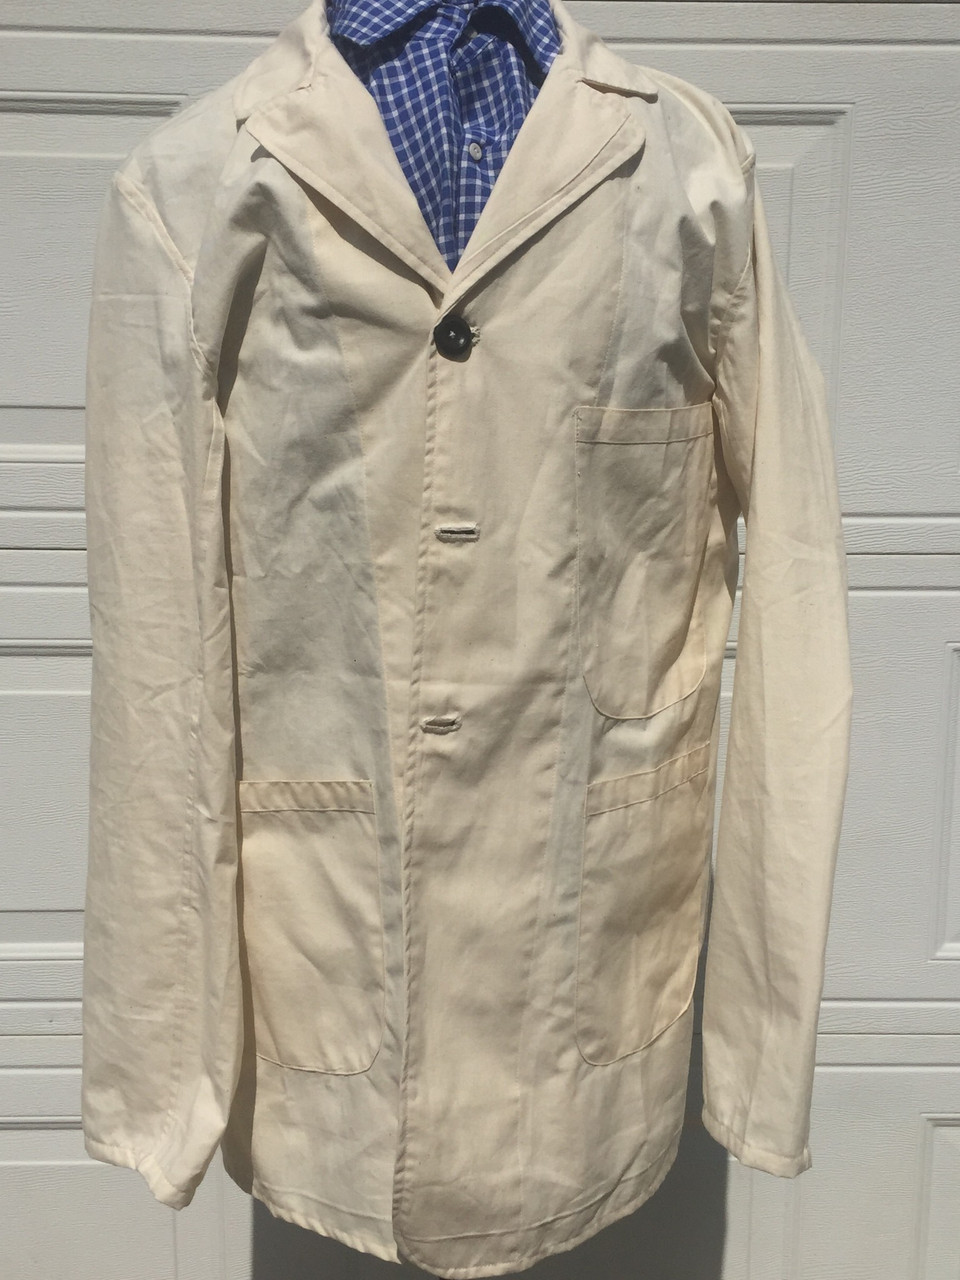 Civilian Sack Coat - Cotton